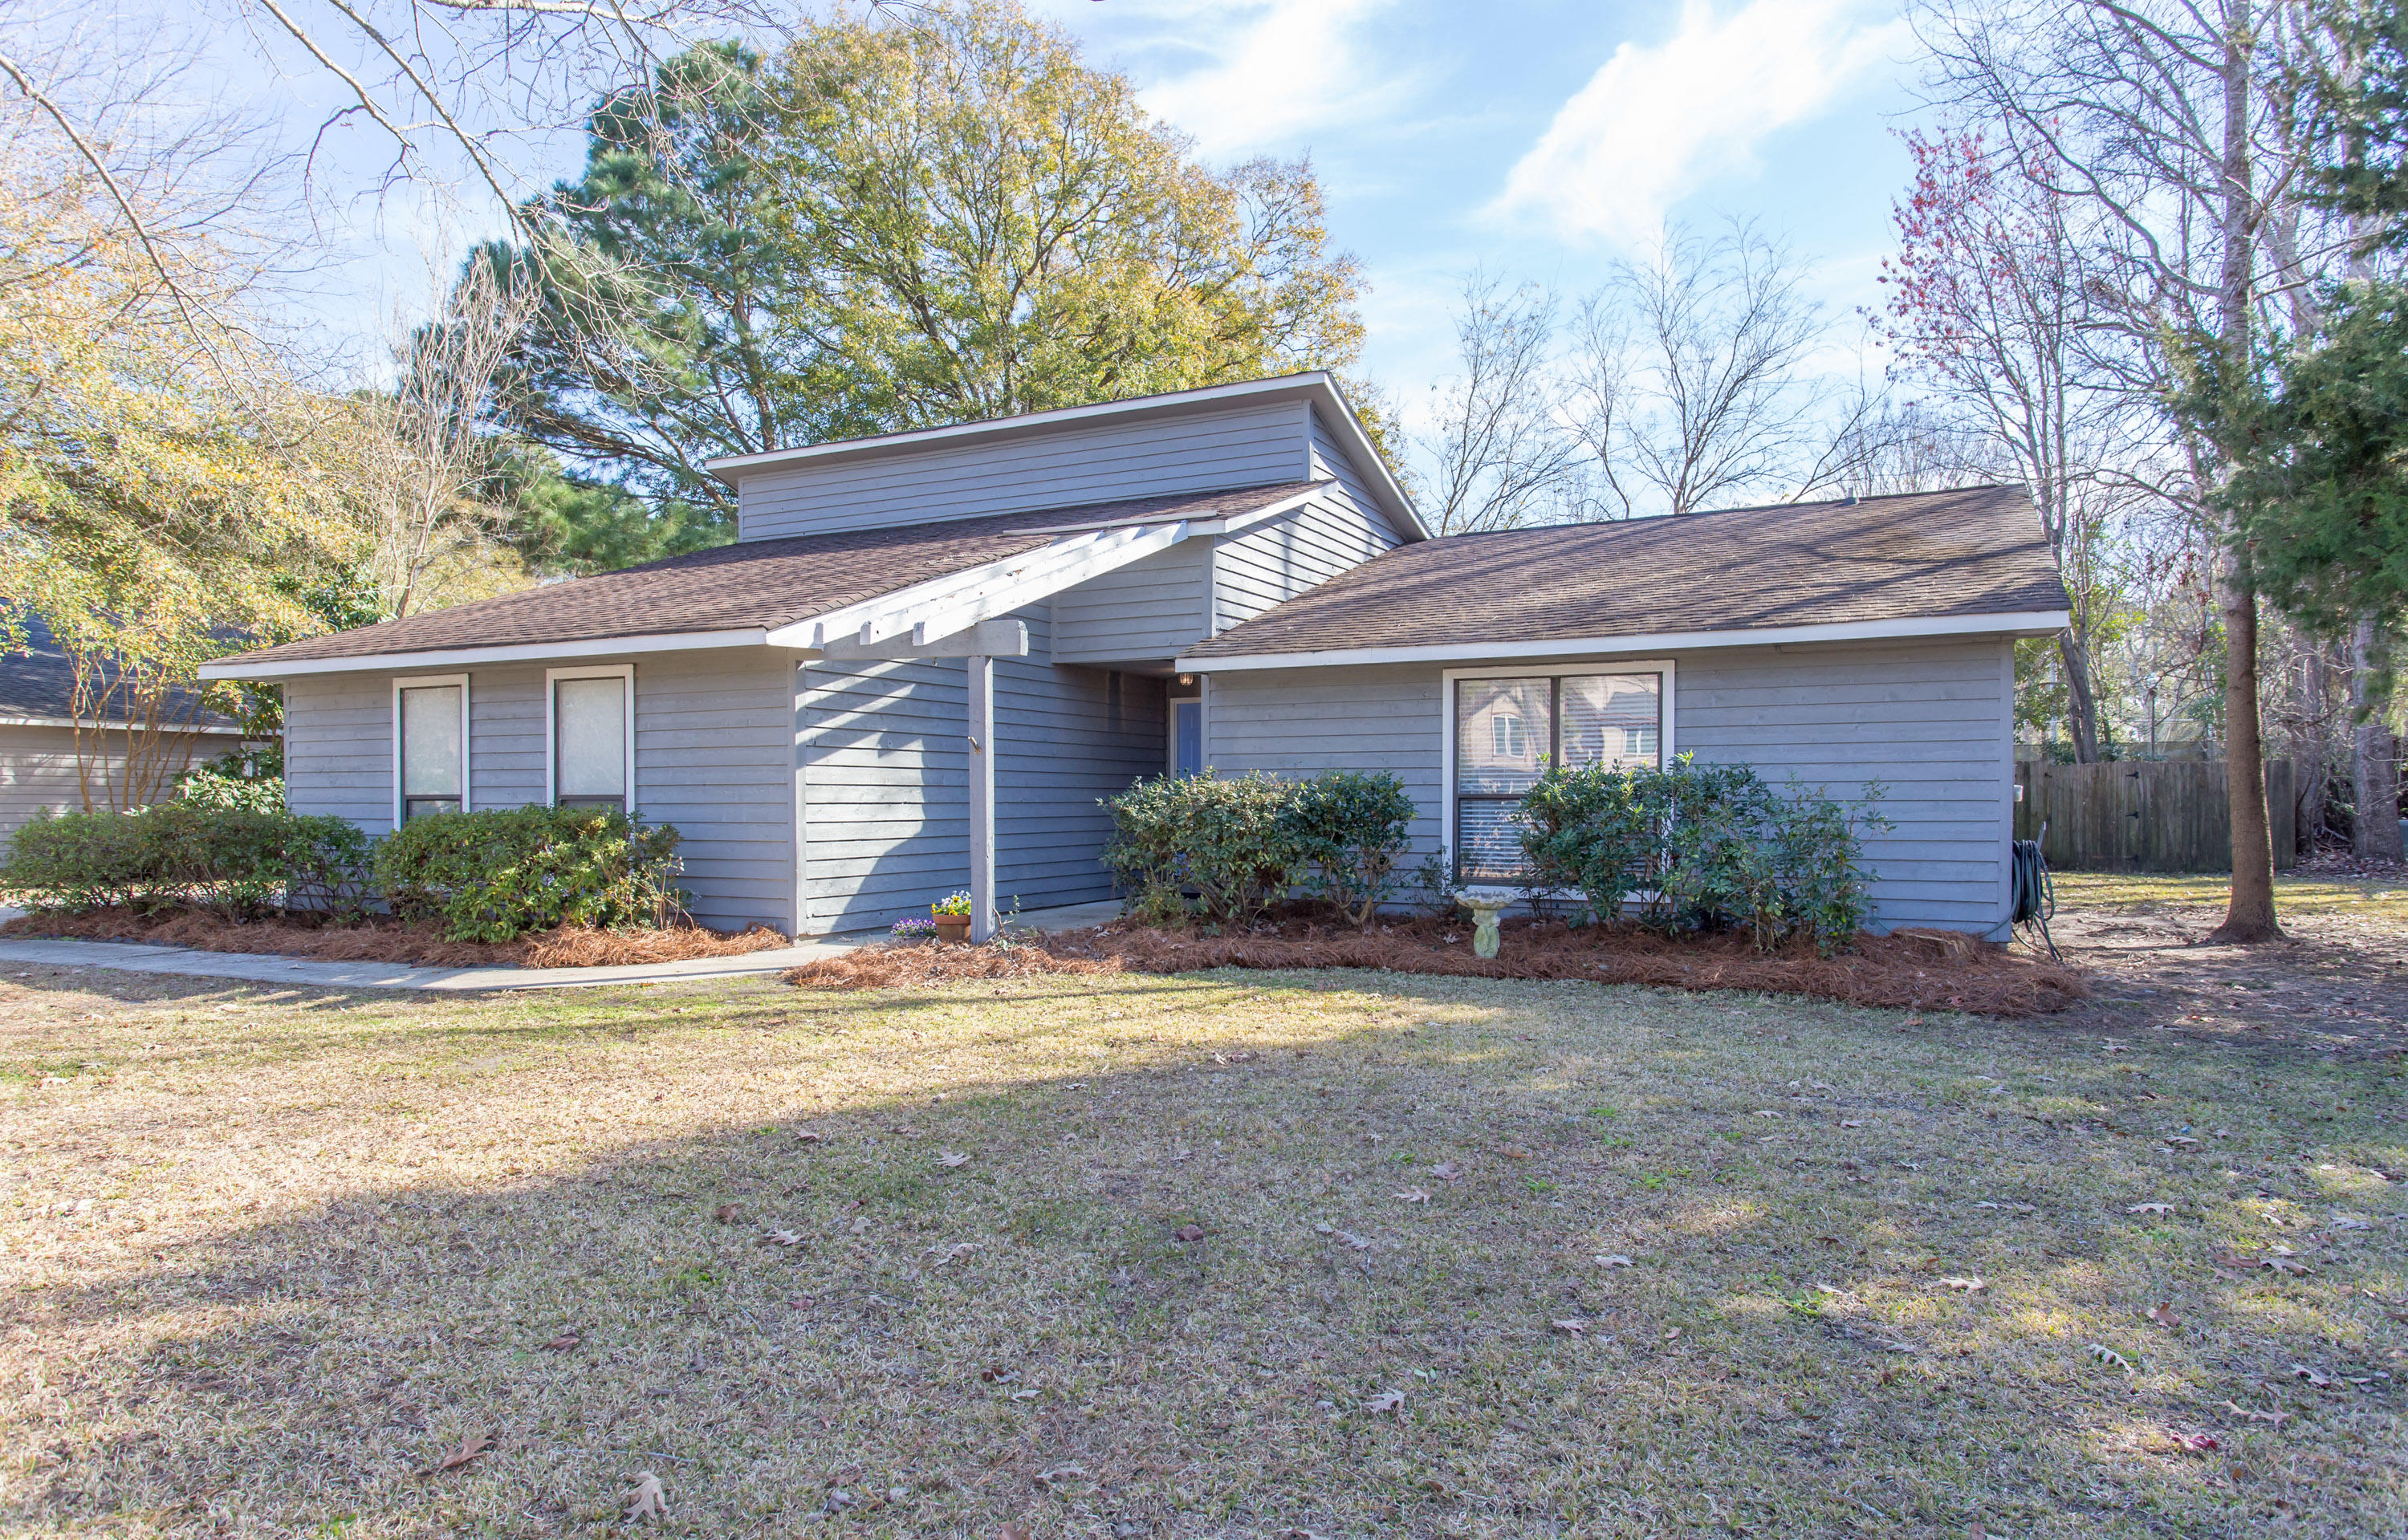 Coopers Landing Homes For Sale - 513 Upland, Mount Pleasant, SC - 10